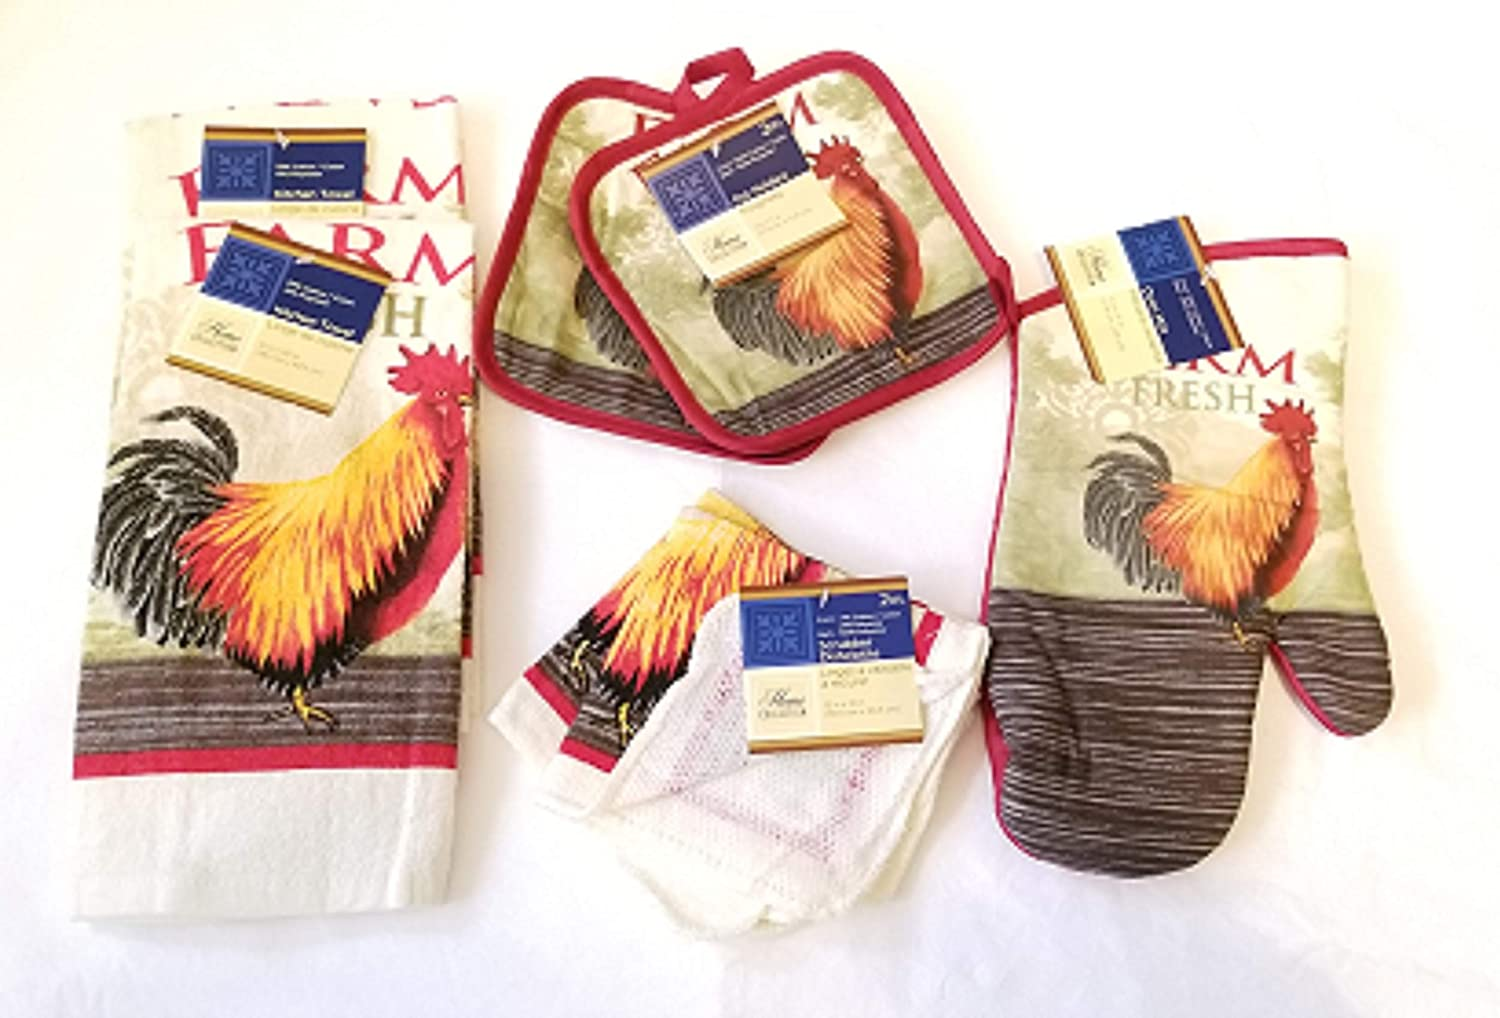 Home Collection Rooster Kitchen Decor ~ 7-Pc Farm Fresh Red Rooster Theme with 2 Towels - 2 Pot Holders - 2 Dish Cloths - 1 Oven Mitt